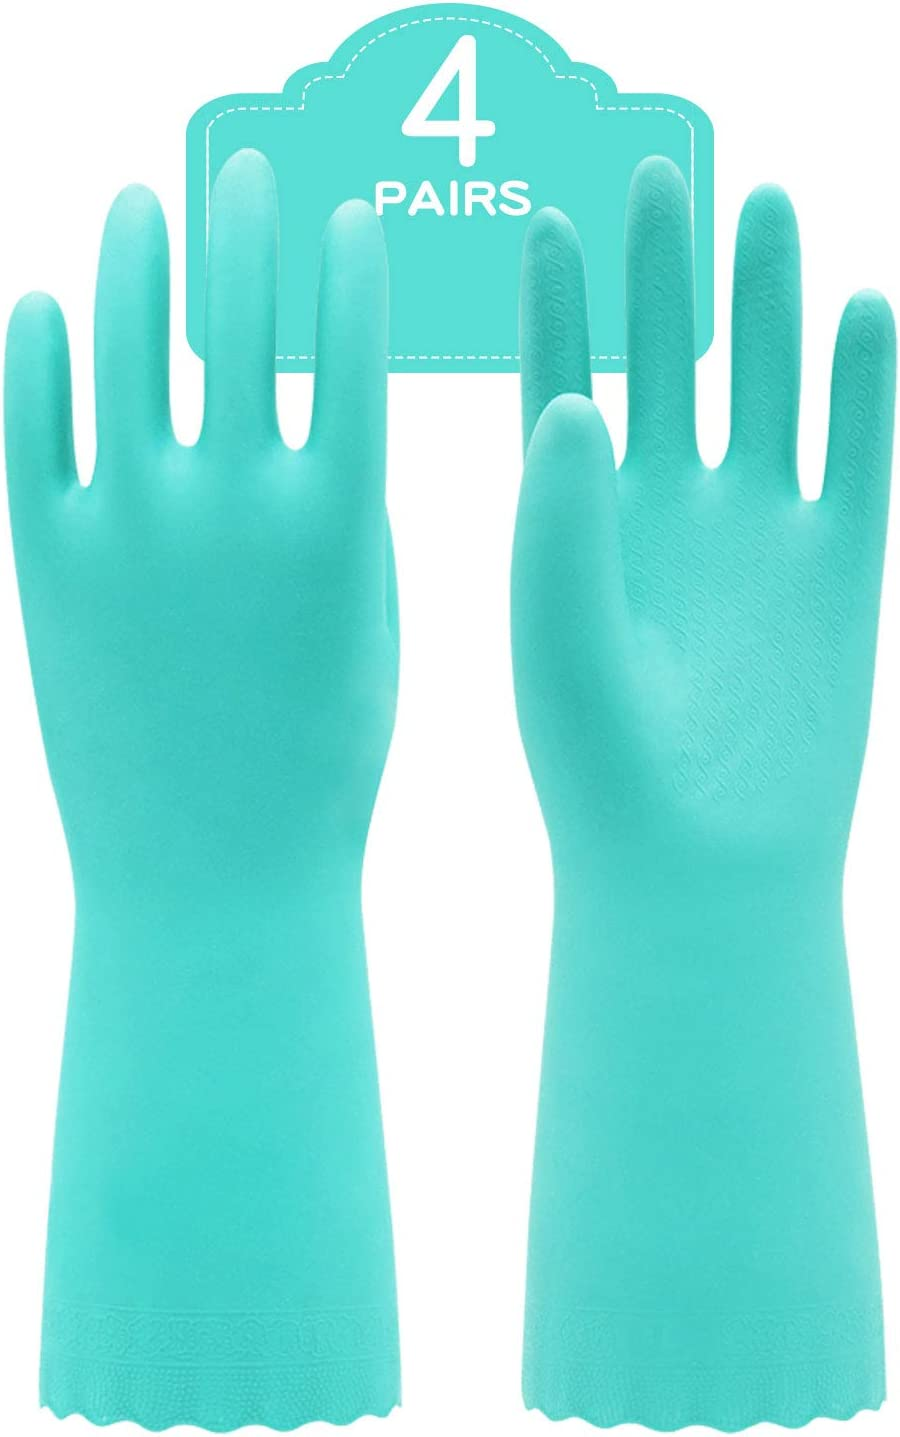 Purple,M Pacific PPE 2Pairs Household Glove Reusable Cleaning Dishwashing Gloves-Latex Free Waterproof PVC Gloves for Kitchen,Gardening Gloves Flocked with Cotton Liner